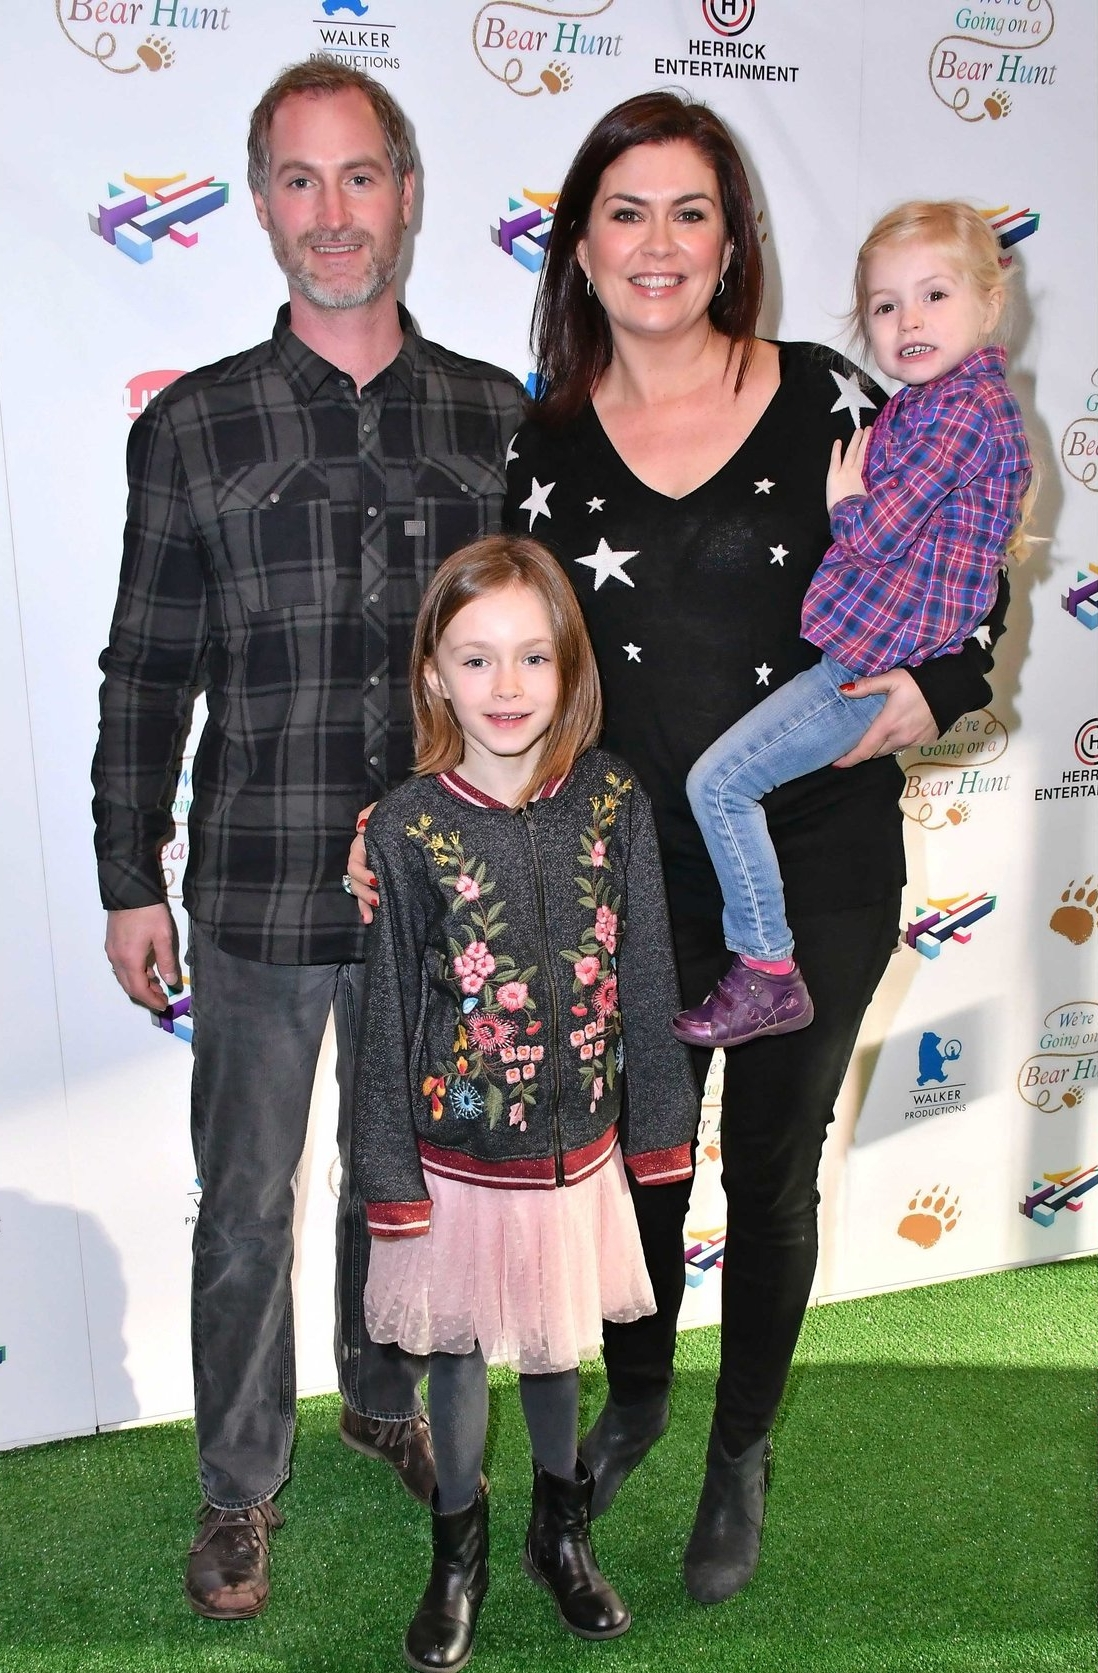 Amanda with husband, Sean and two daughters, Willow and Lottie